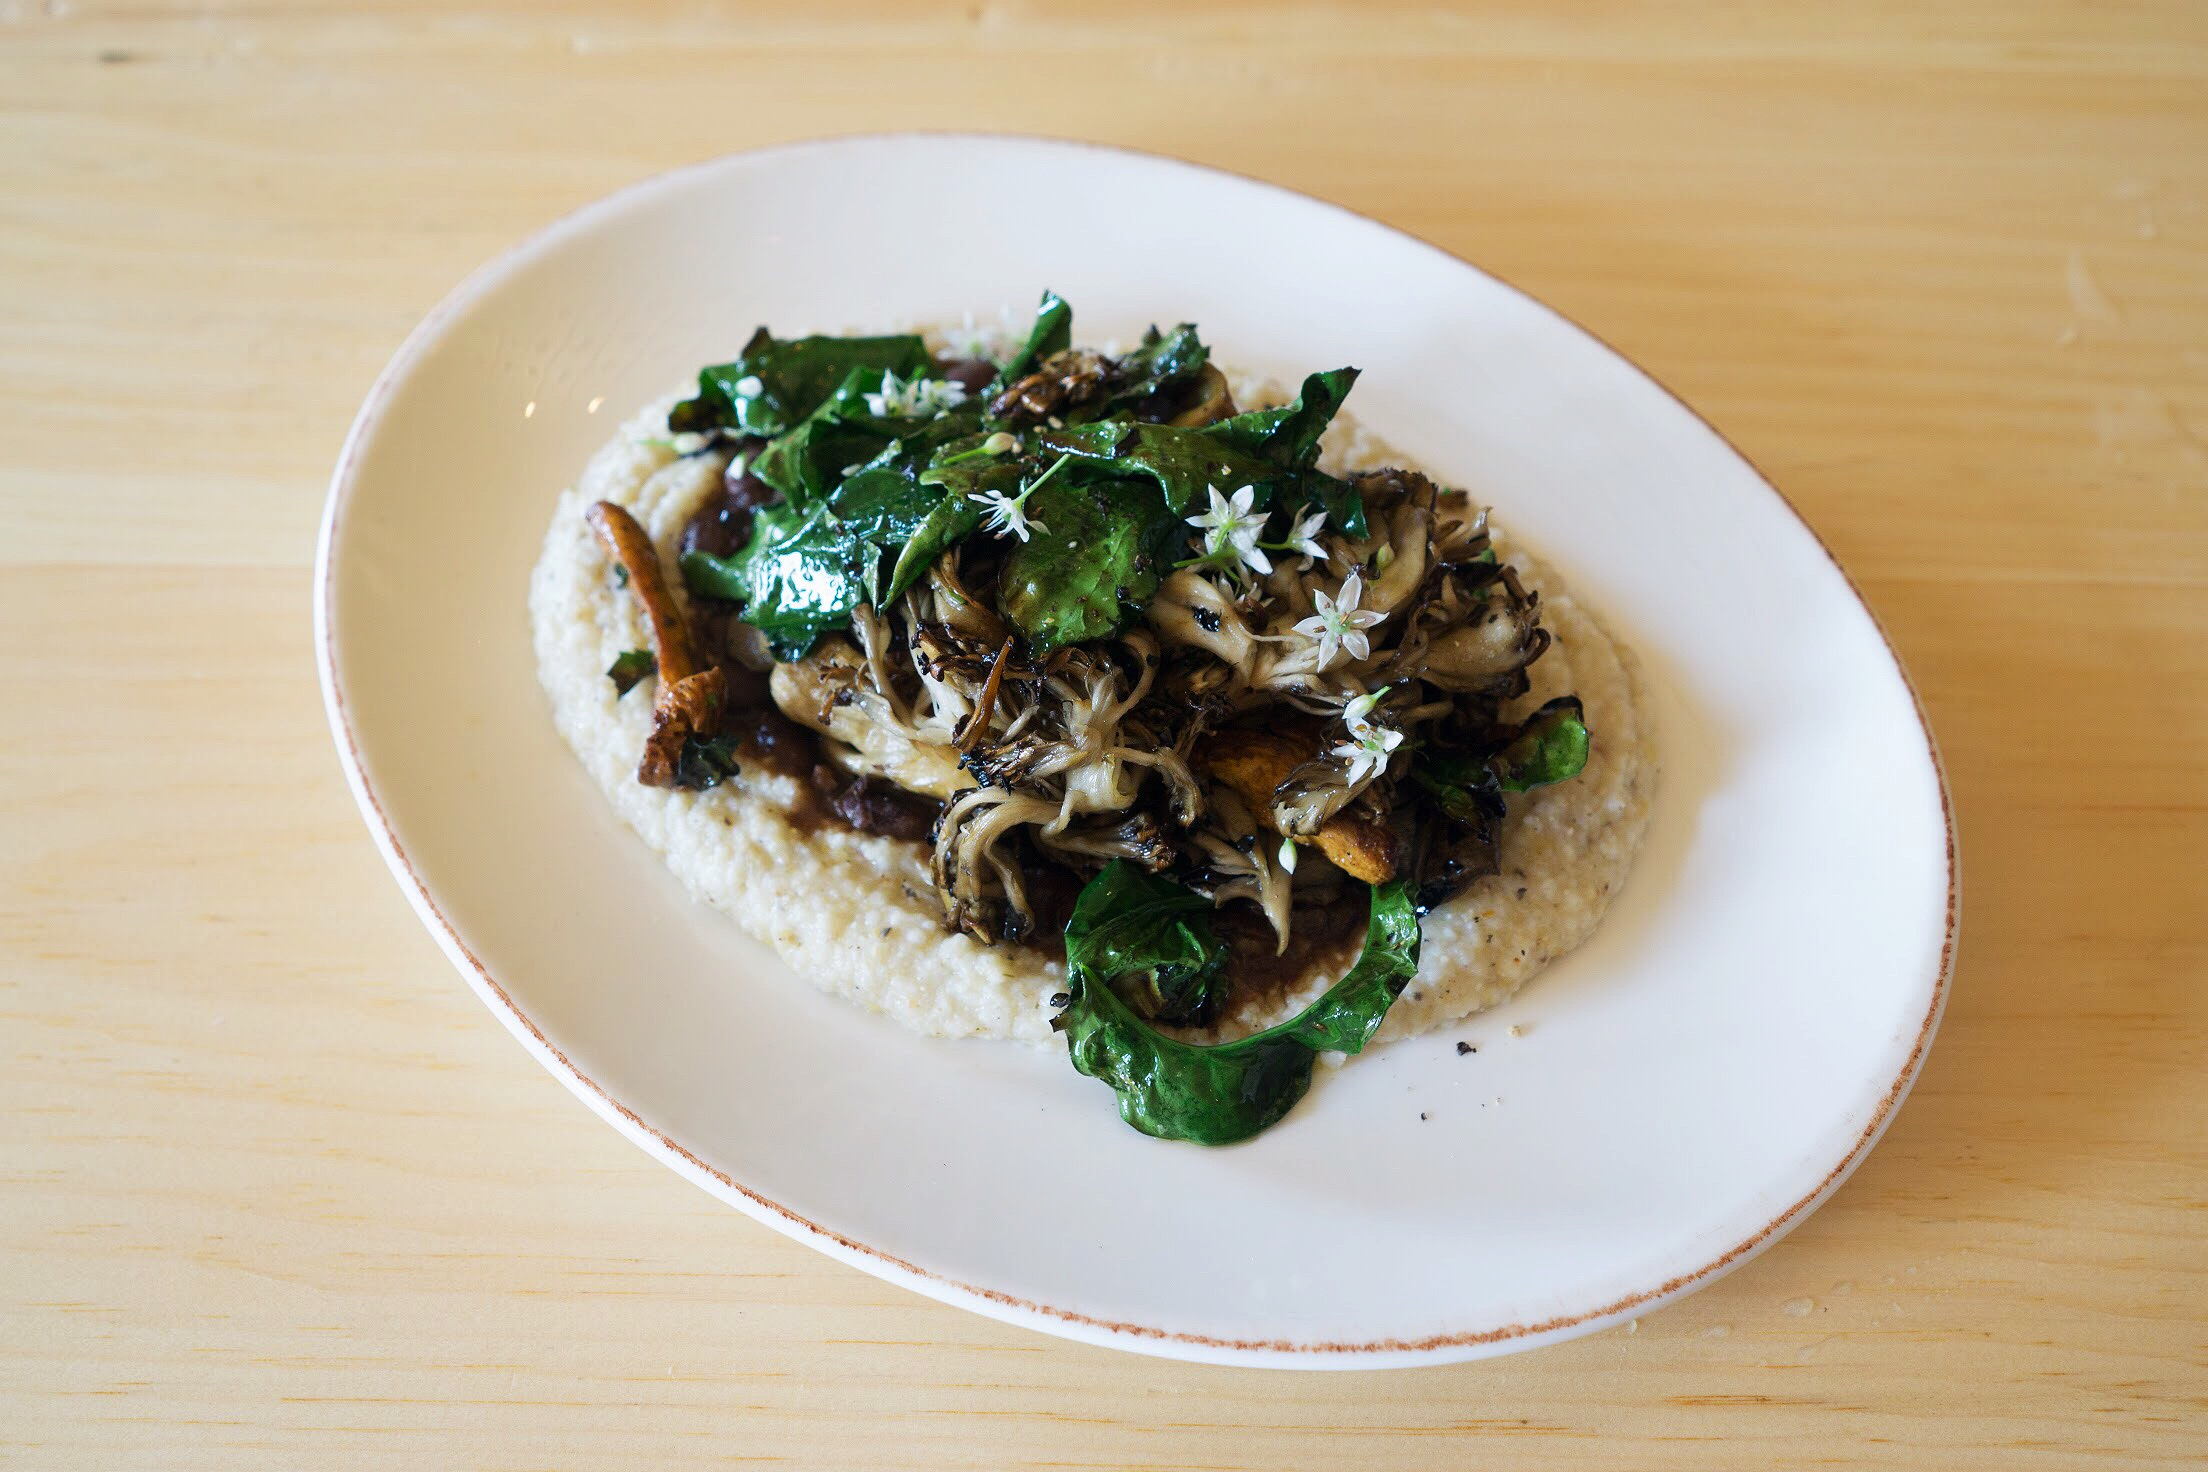 Wood-roasted mushrooms, charred spigarello, soft polenta, yellow-eye bean and rosemary gravy.  Photo by Alycia Chrosniak